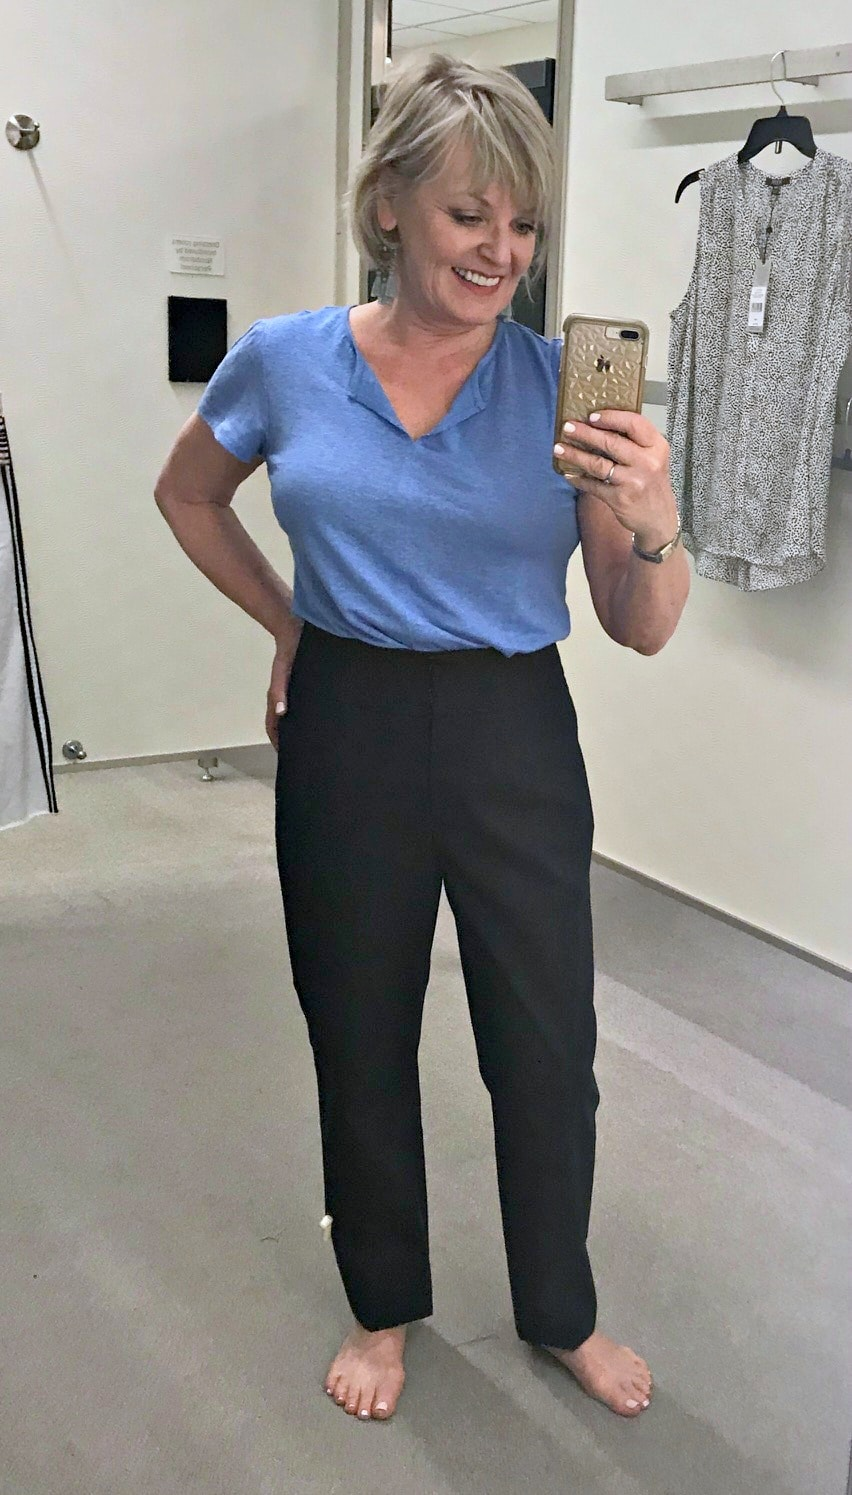 Jennifer Connolly of A Well Styled Life modelingHigh Waist Pants by Emerson Rose from Nordstrom